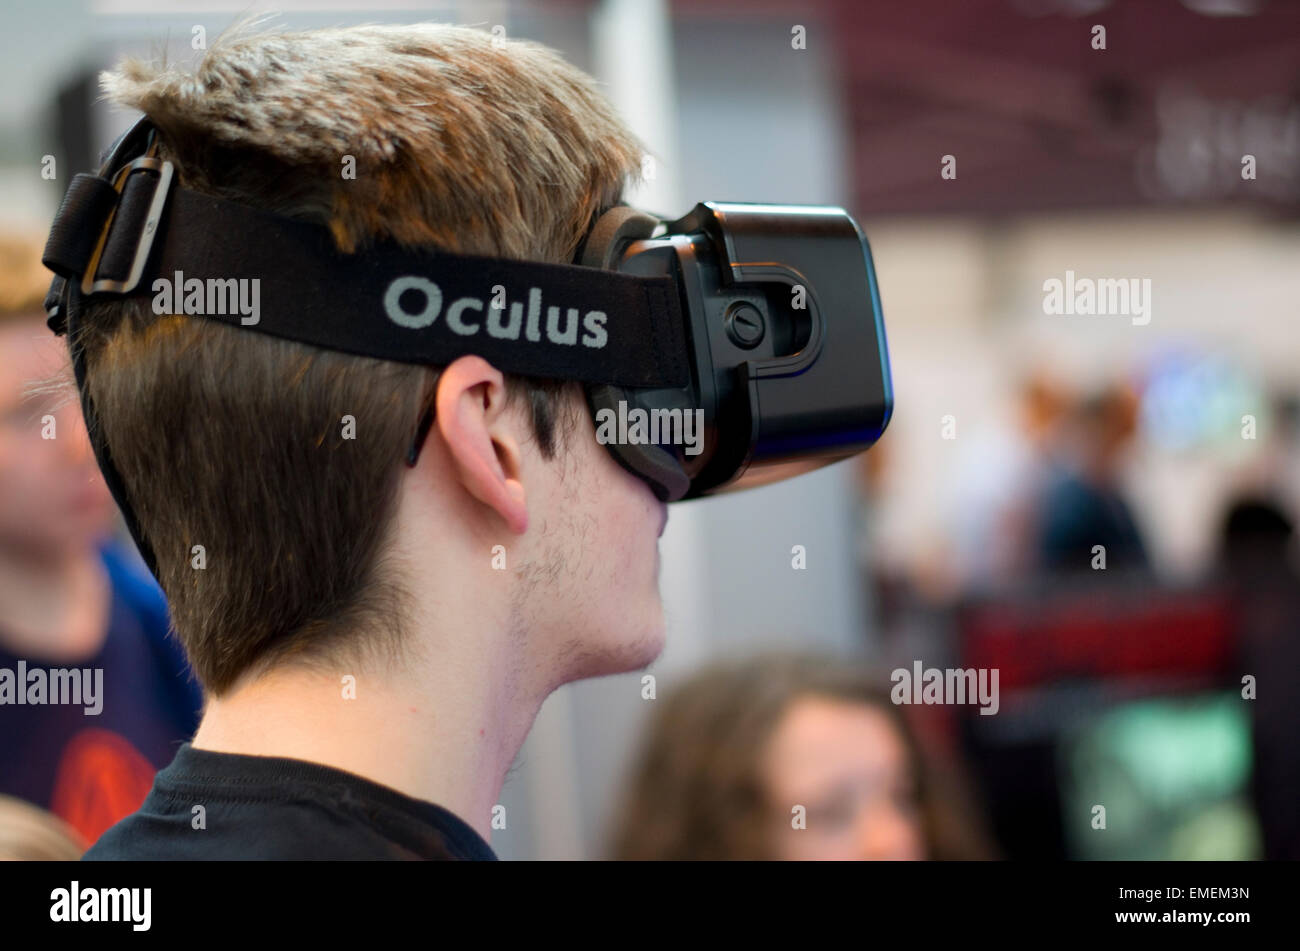 Male wearing Oculus Rift 3D virtual reality goggles - Stock Image